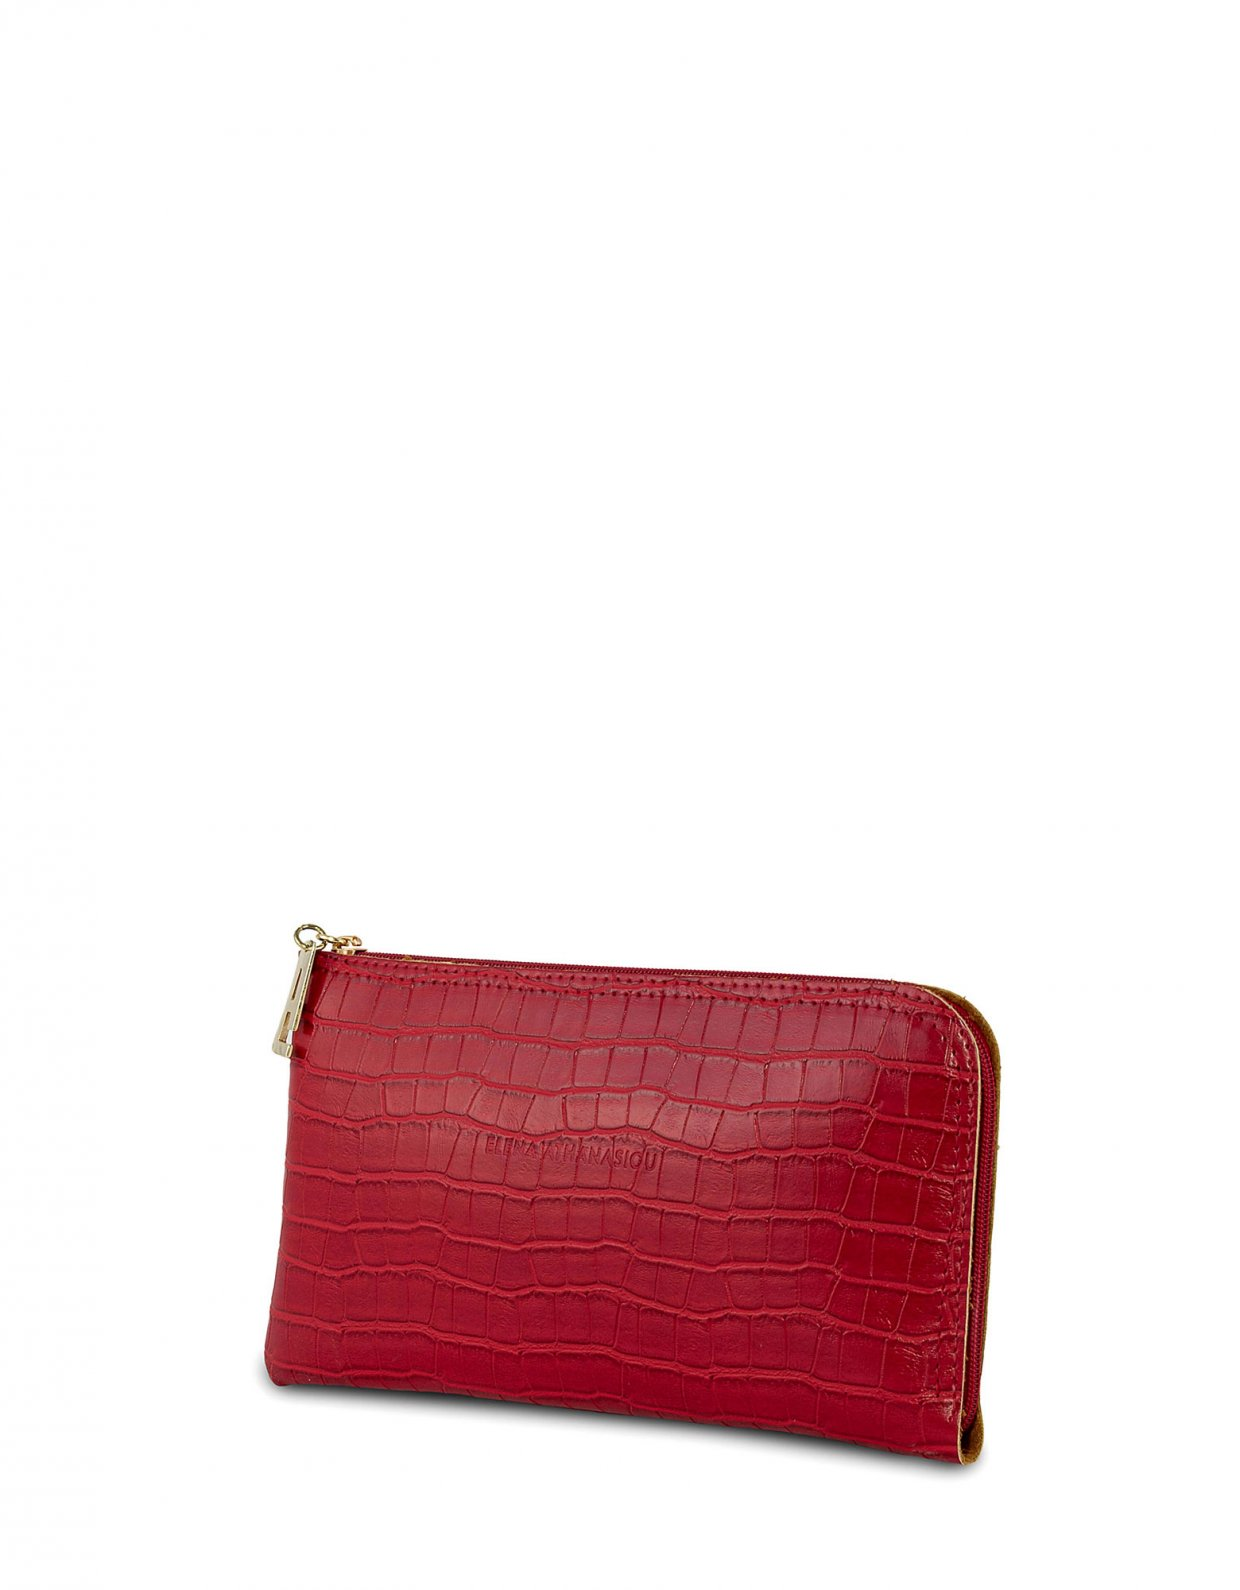 Elena Athanasiou Mini clutch bag red croco